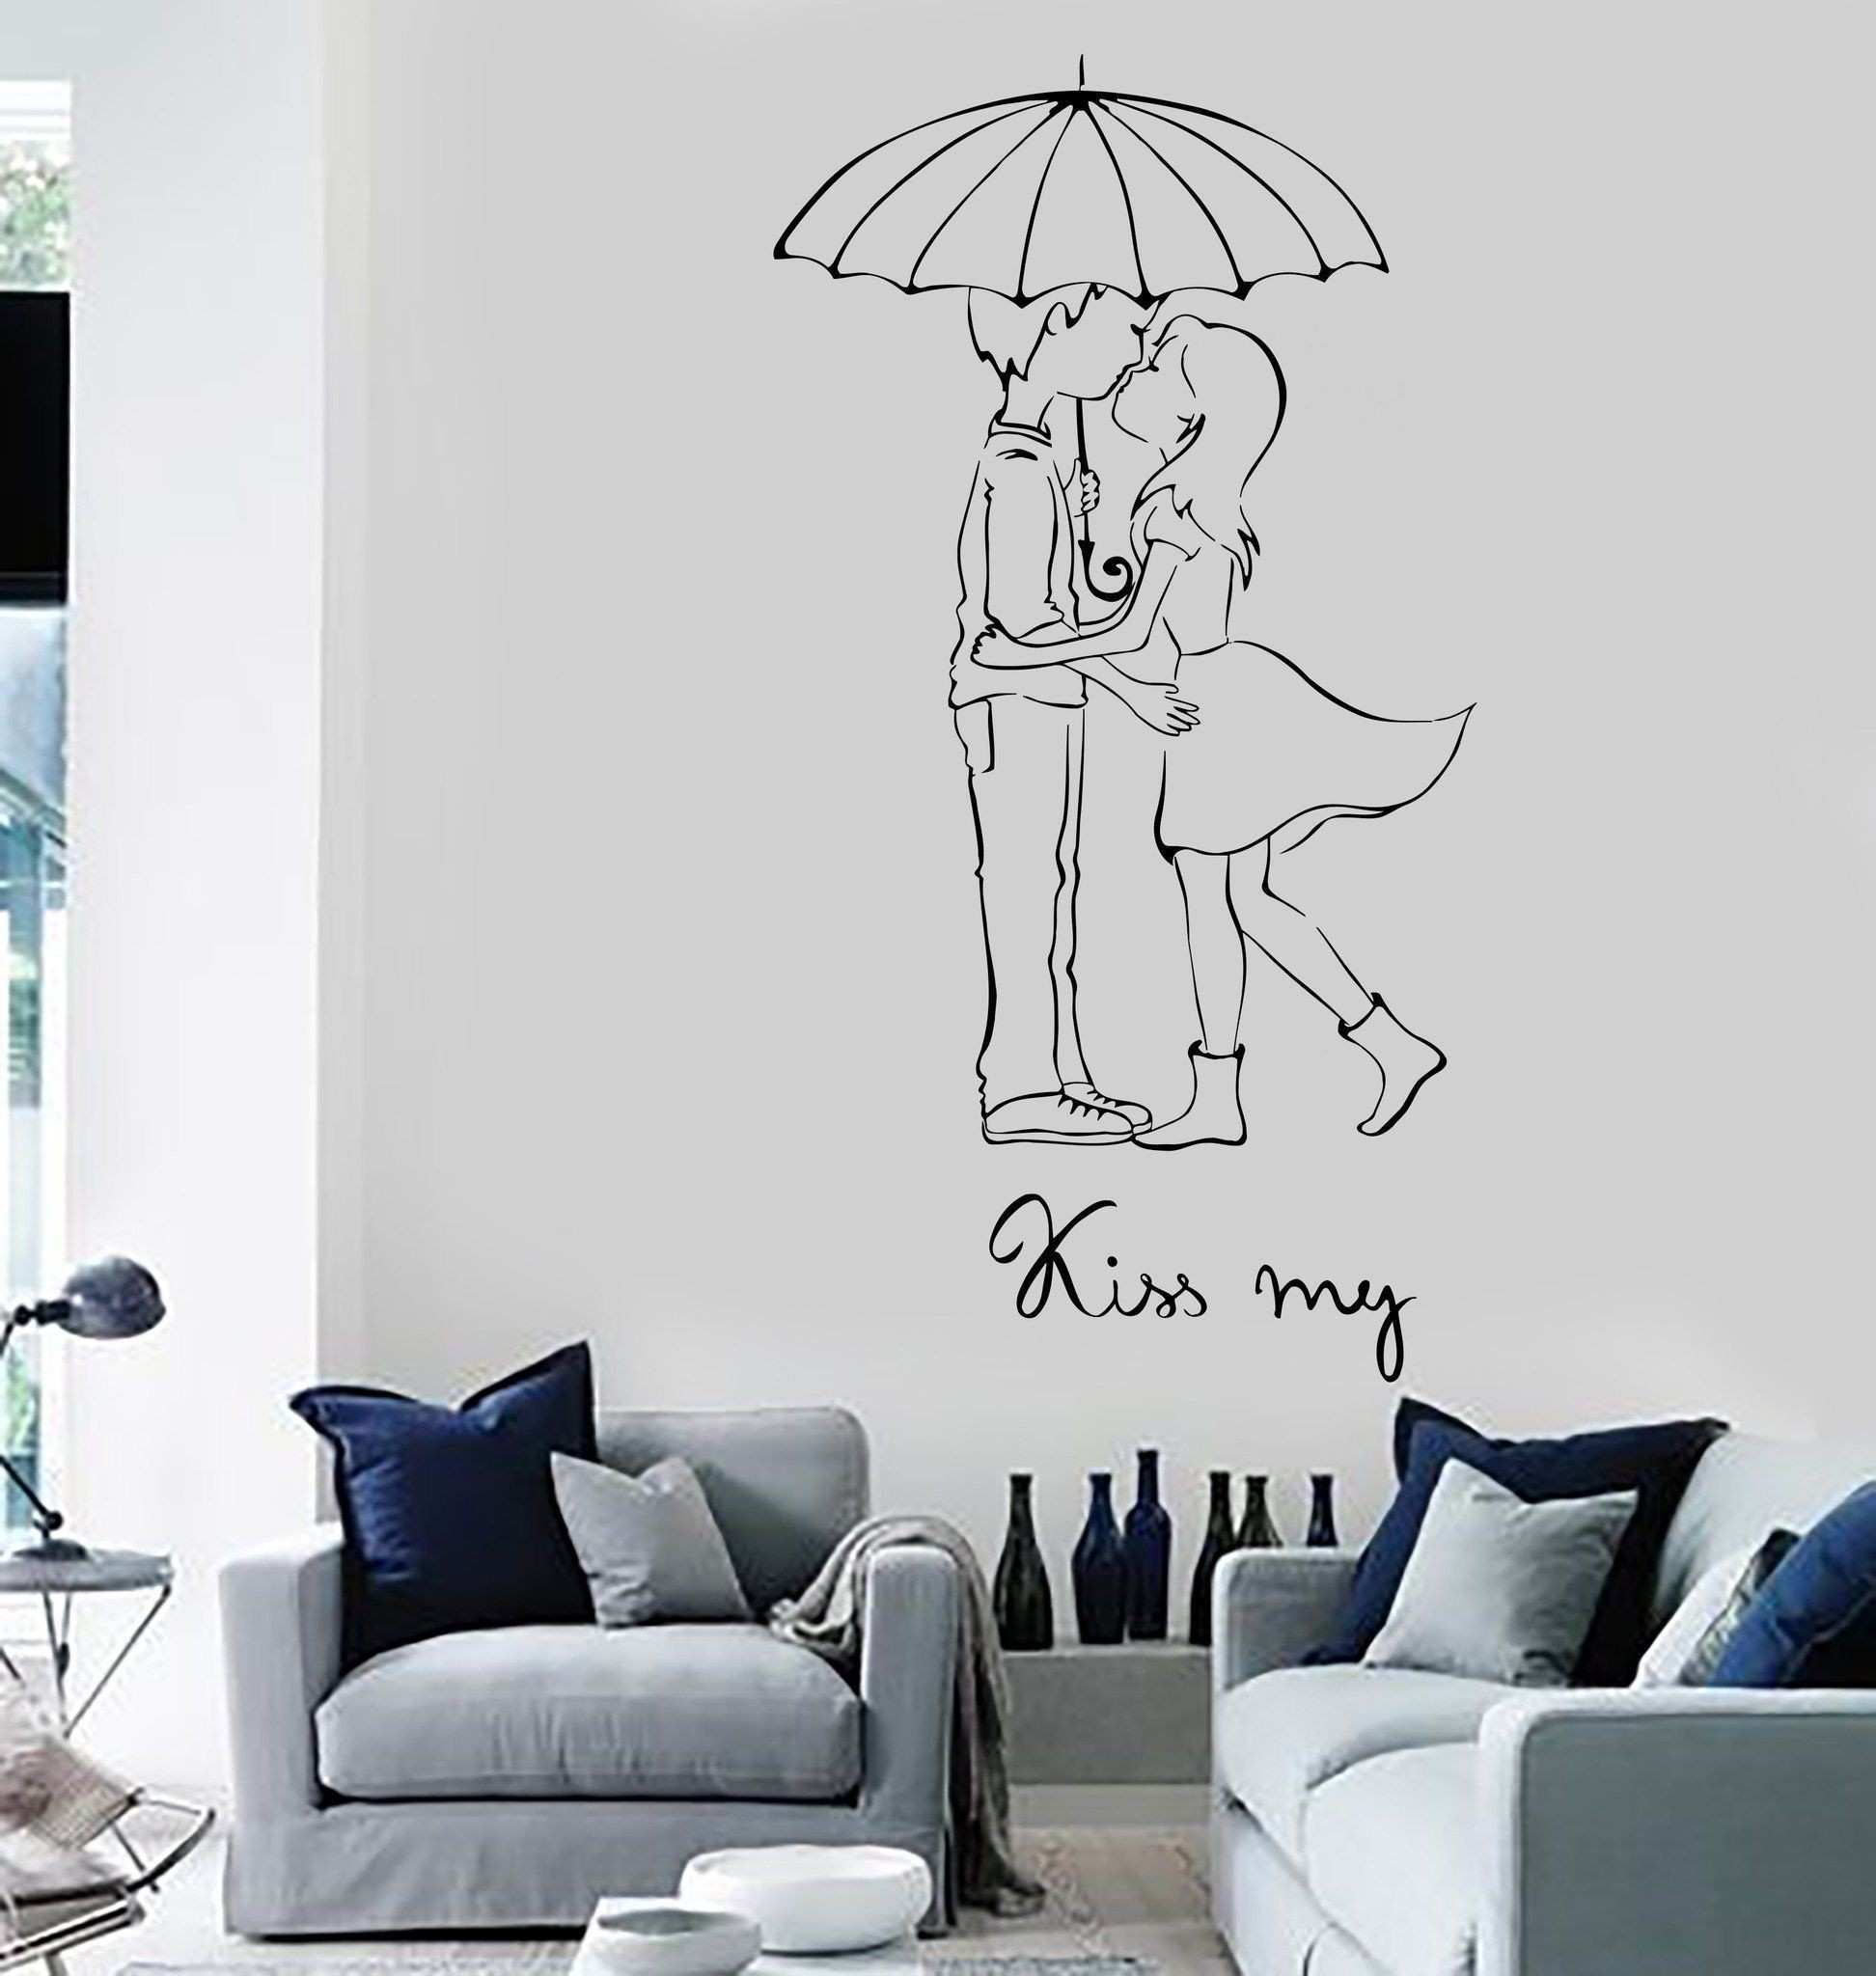 Wall Vinyl Decal Love Couple Kiss My Romantic Bedroom Decor Unique